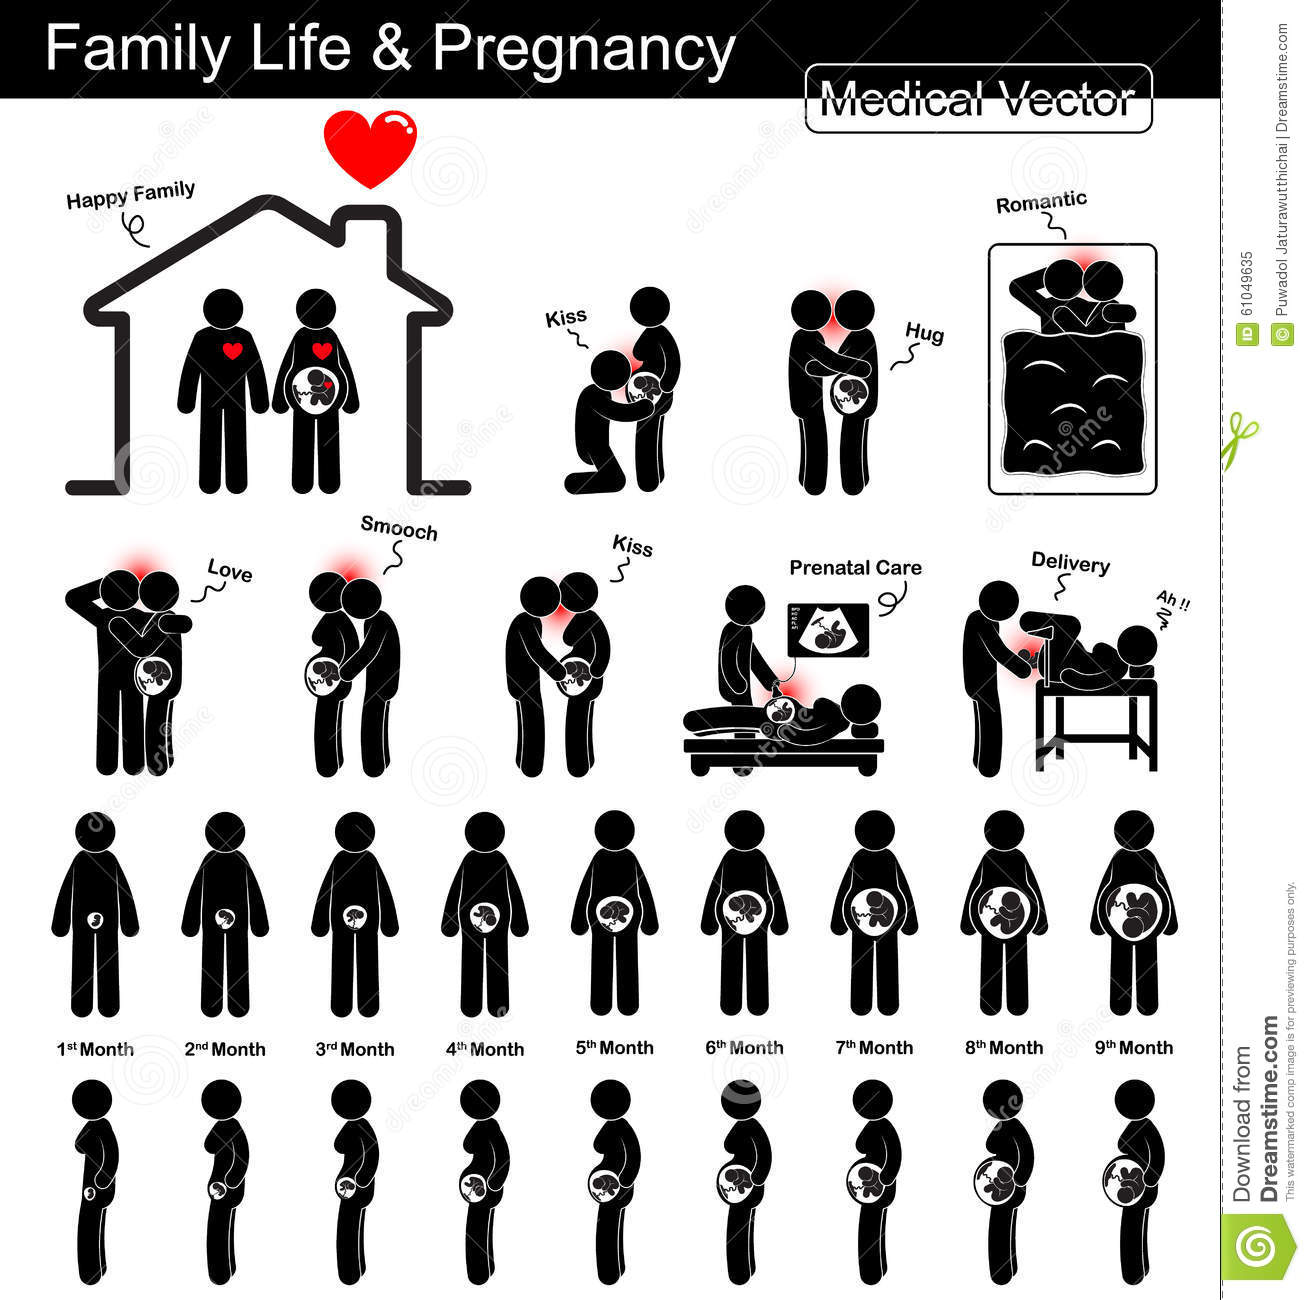 family life during pregnancy and fetal development   pregnant woman and fetal growth in uterus